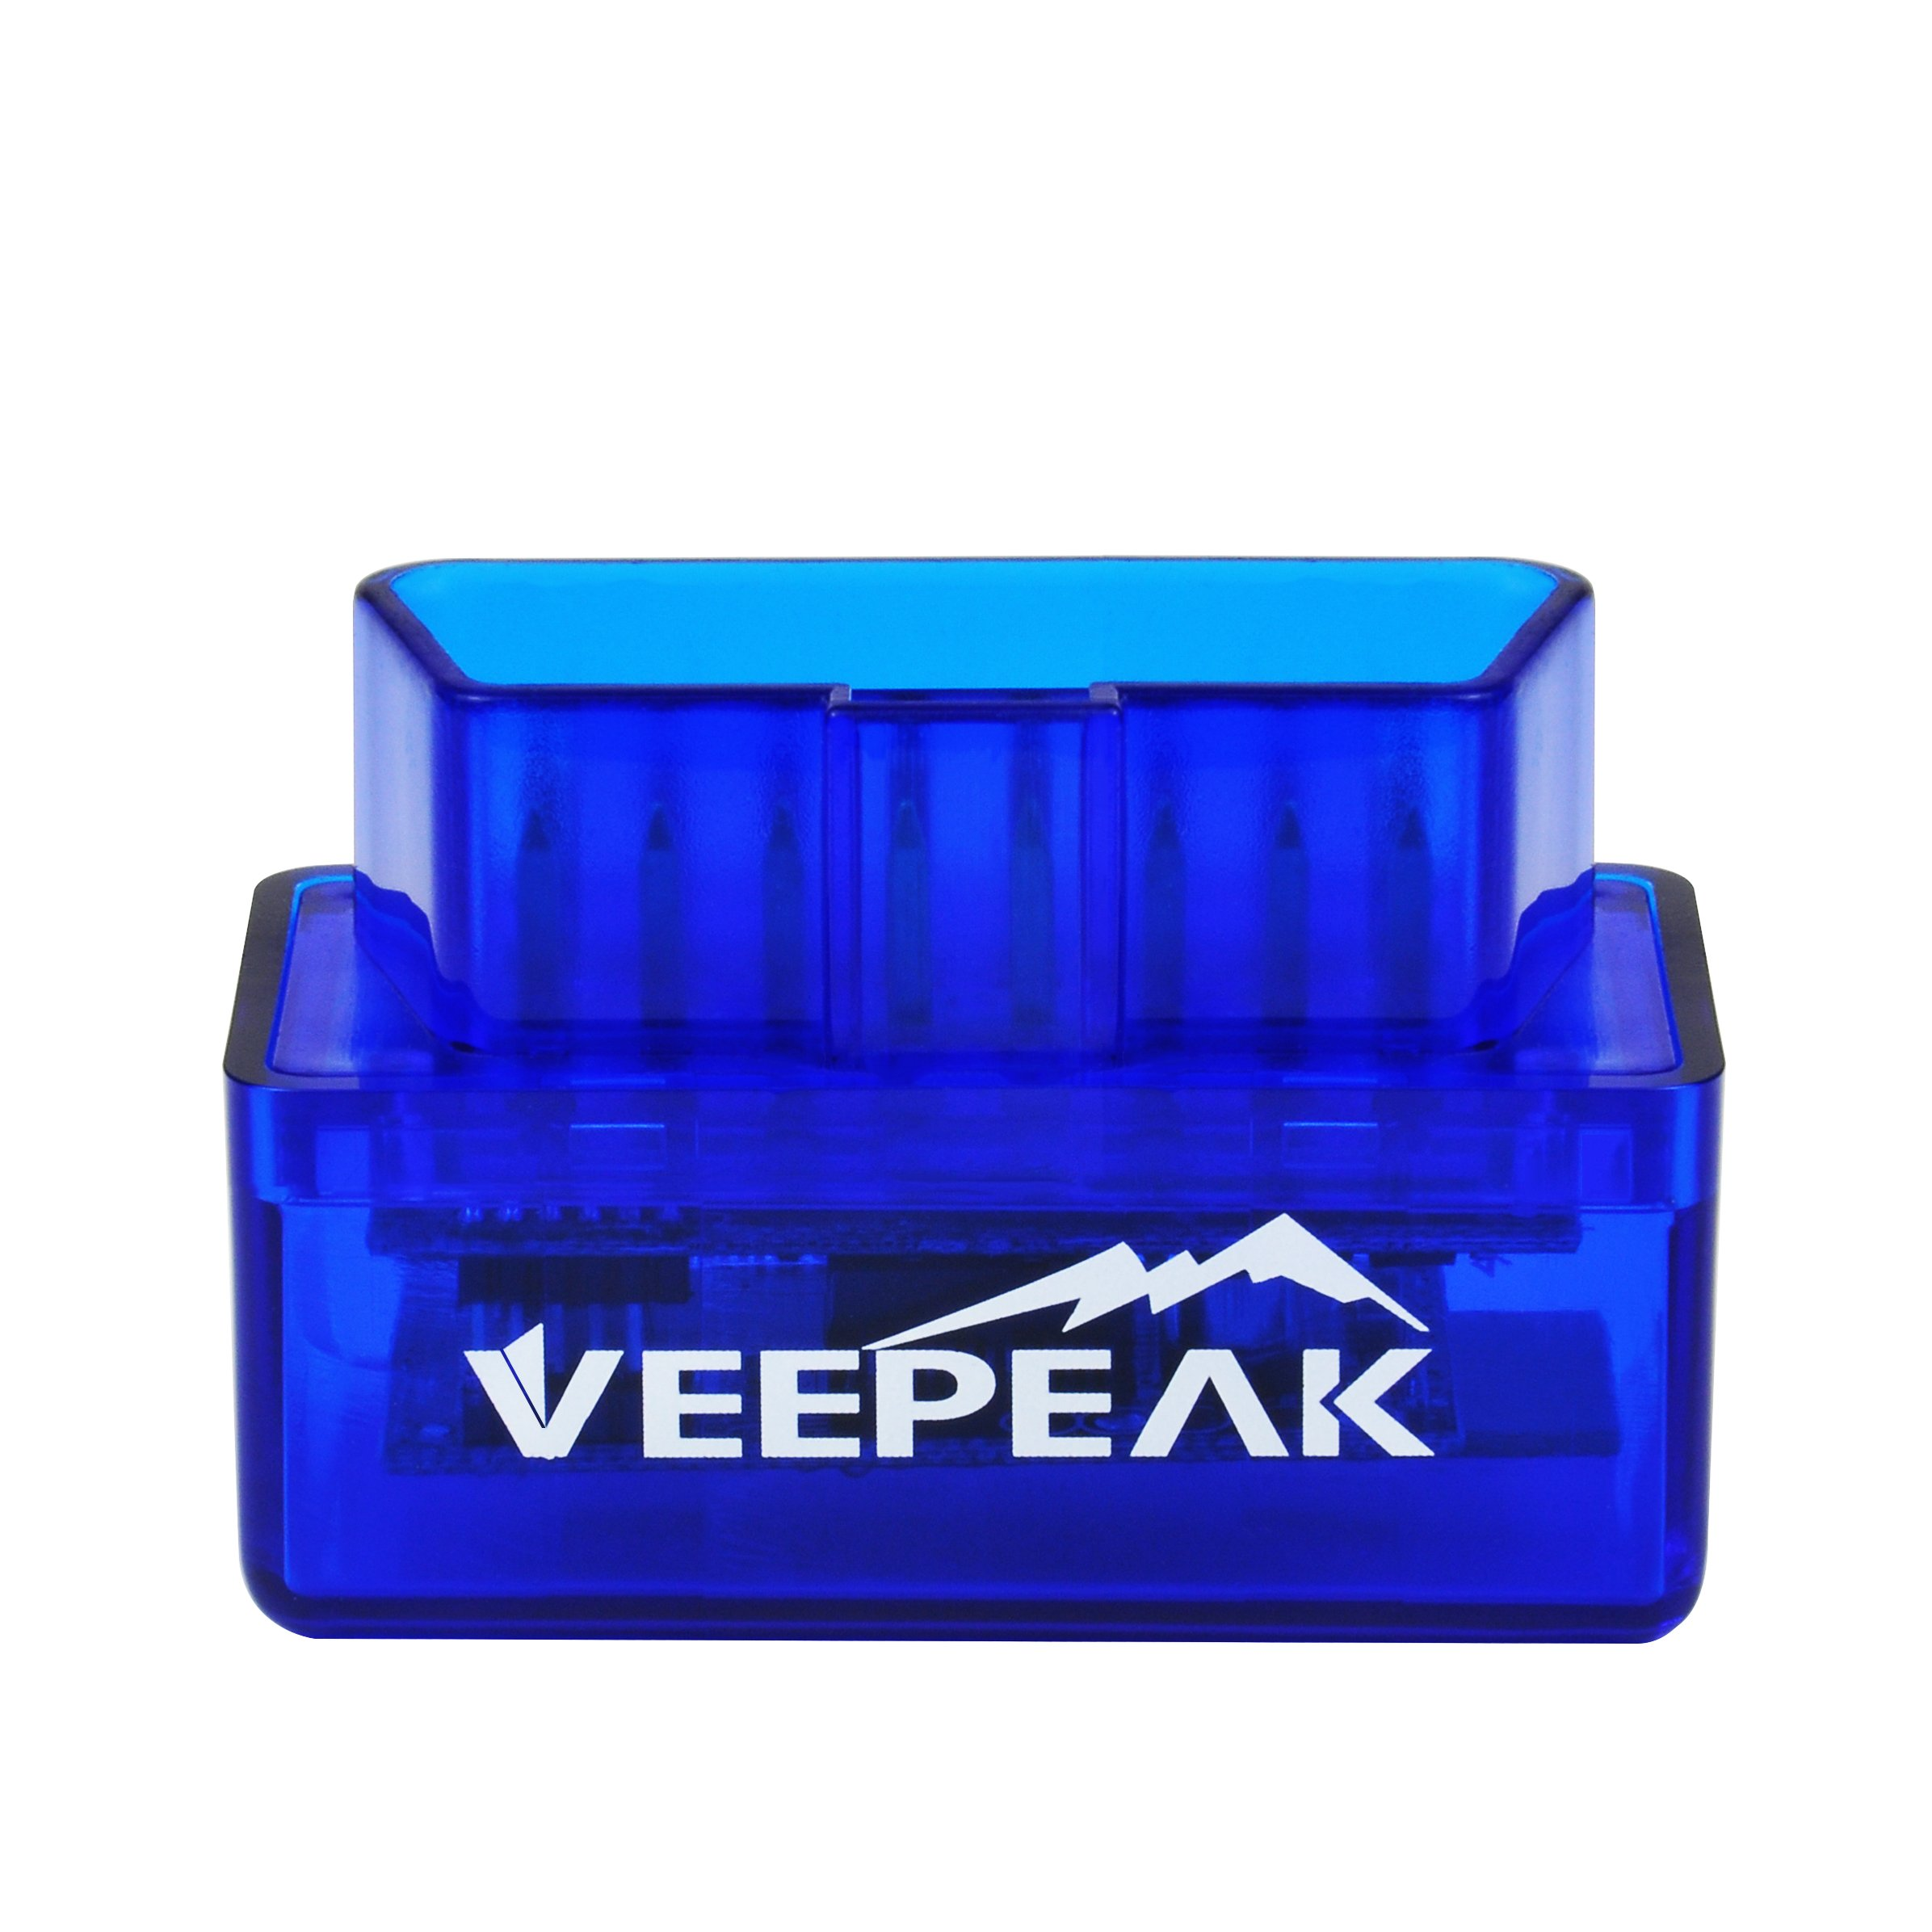 Veepeak Mini Bluetooth OBD2 Scanner Car Diagnostic Tool for Android Windows, Automotive Check Engine Light Code Reader for 1996 and Newer Vehicles in the US, Supports Torque App